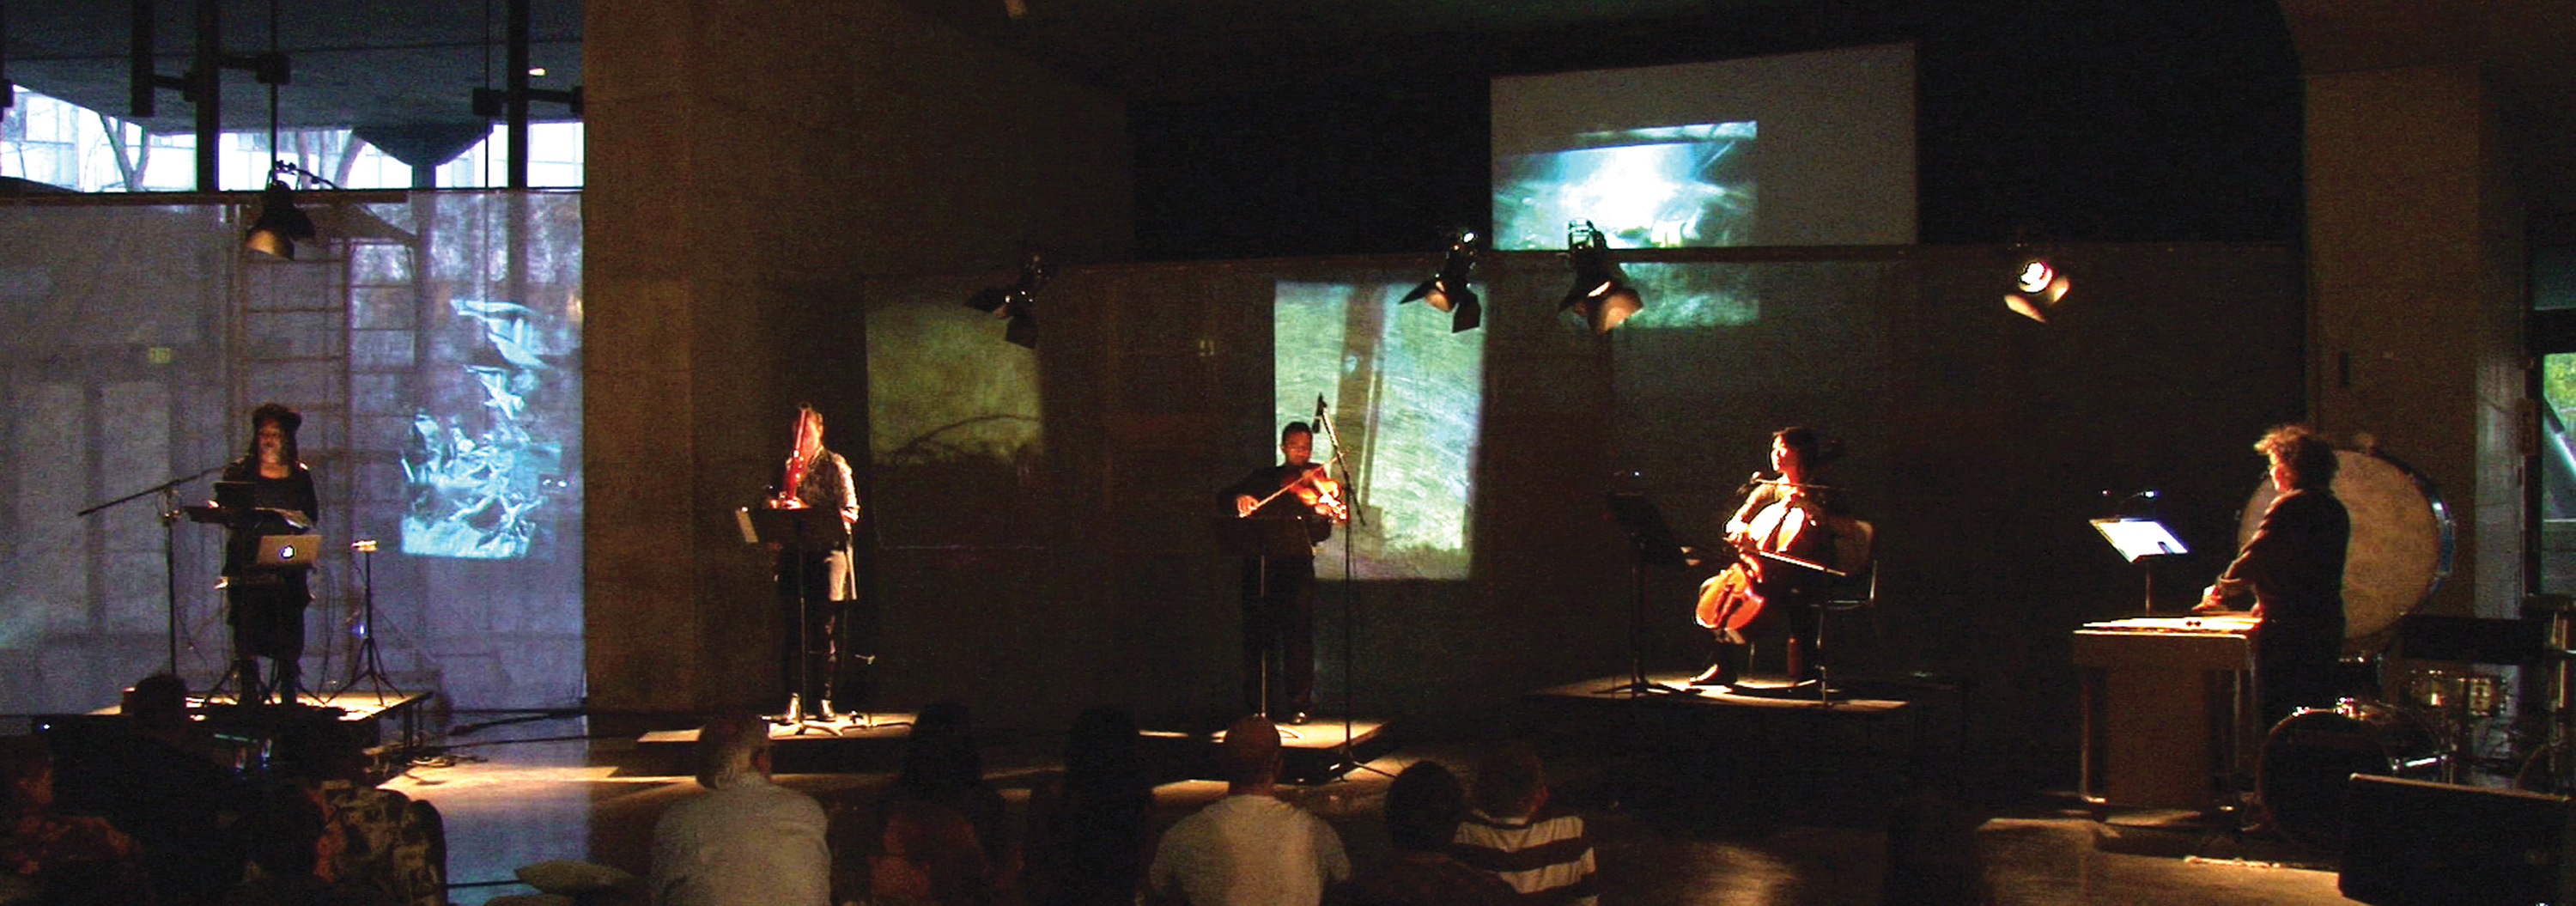 Carbon Song Cycle. From left to right: Pamela Z (voice & electronics), Dana Jessen (bassoon), Charith Premawardhana (viola), Theresa Wong (cello), Suki O'Kane (percussion) with Christina McPhee's video work in the background. Photo: Silvia Matheus.